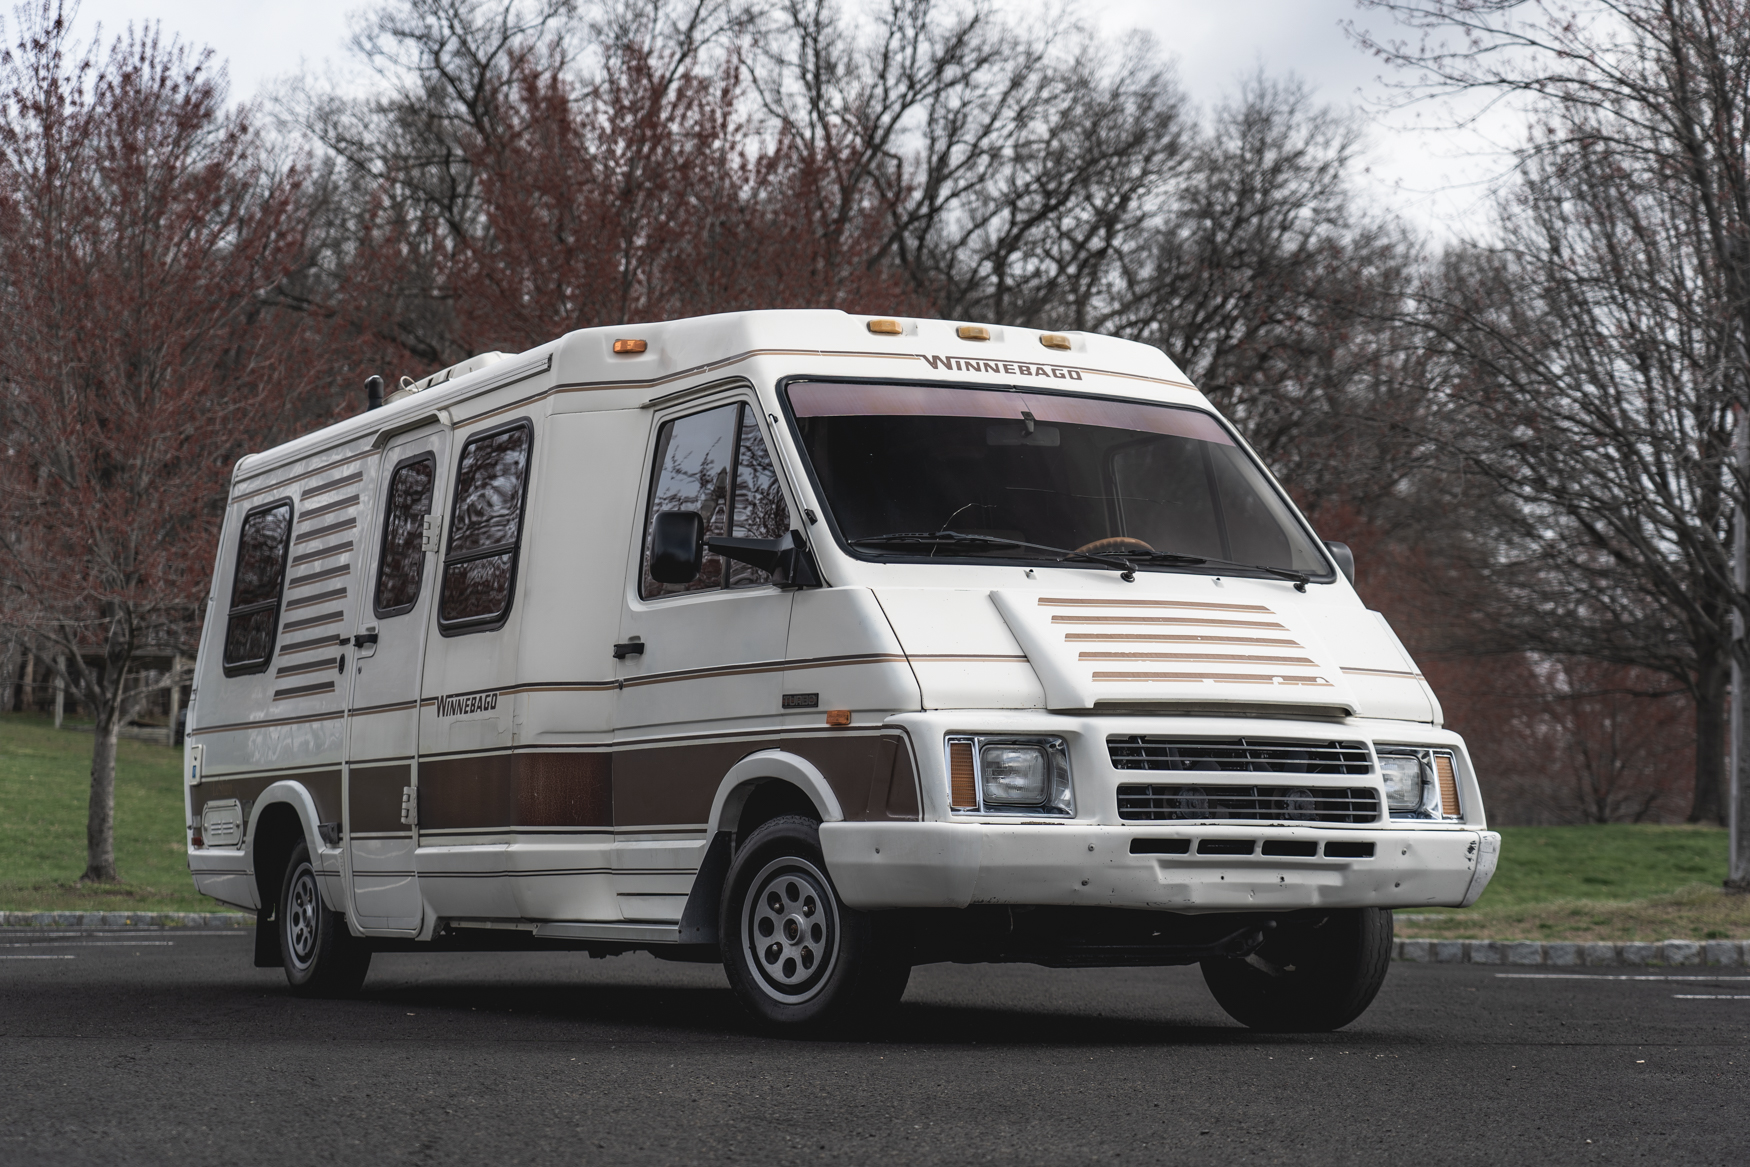 hight resolution of no reserve 1985 winnebago lesharo turbodiesel 4 speed rv for sale on bat auctions sold for 7 100 on may 22 2019 lot 19 108 bring a trailer